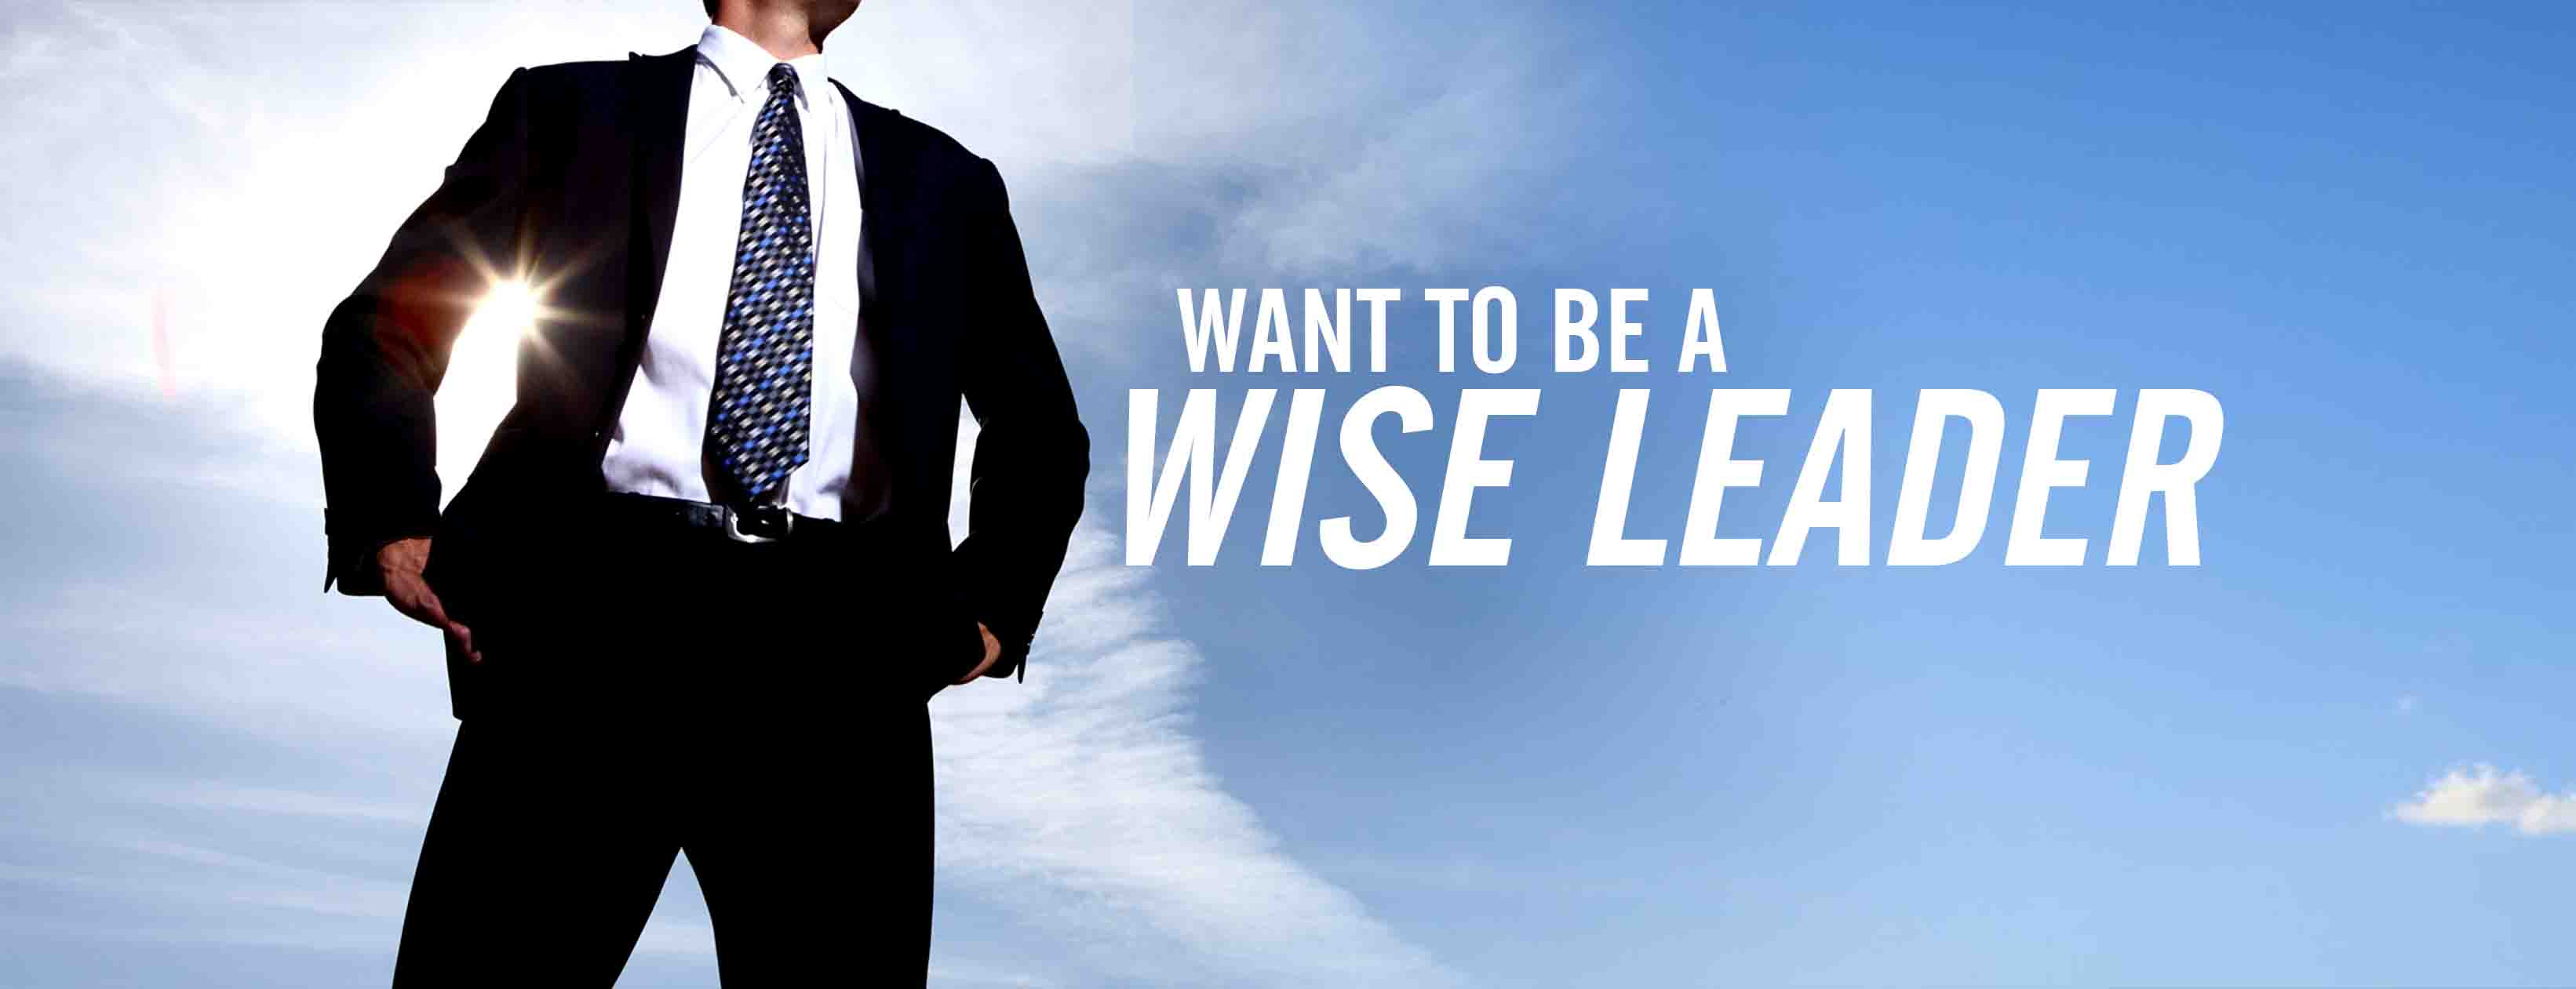 WANT TO BE A WISE LEADER? JOIN US!